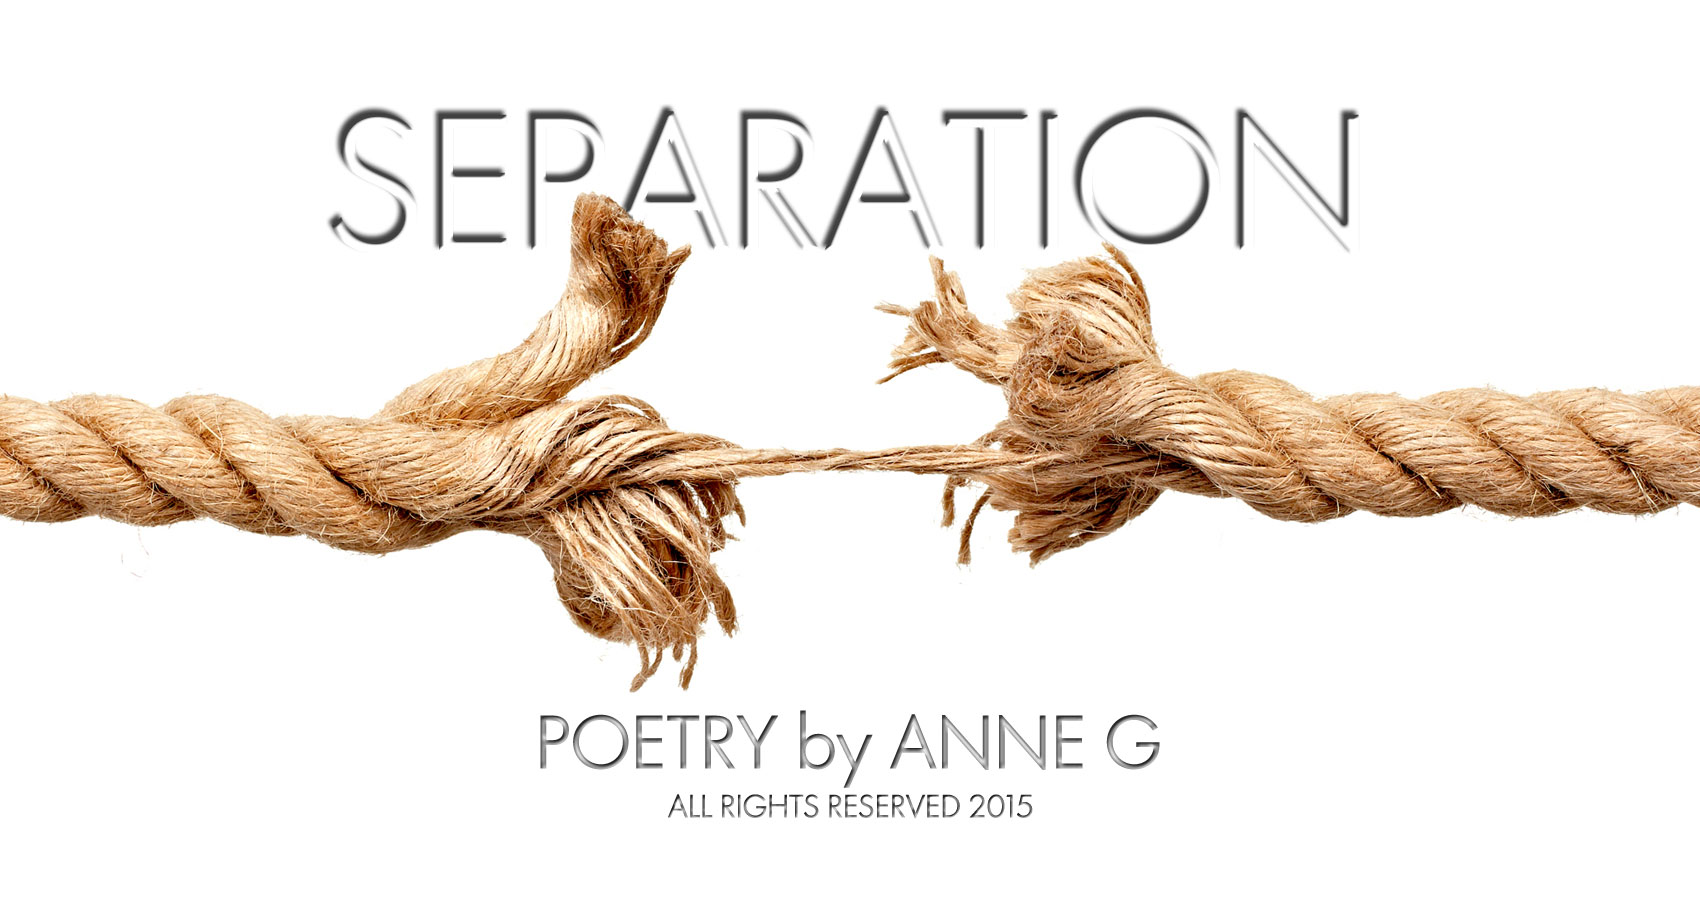 Separation at spillwords.com by Anne G